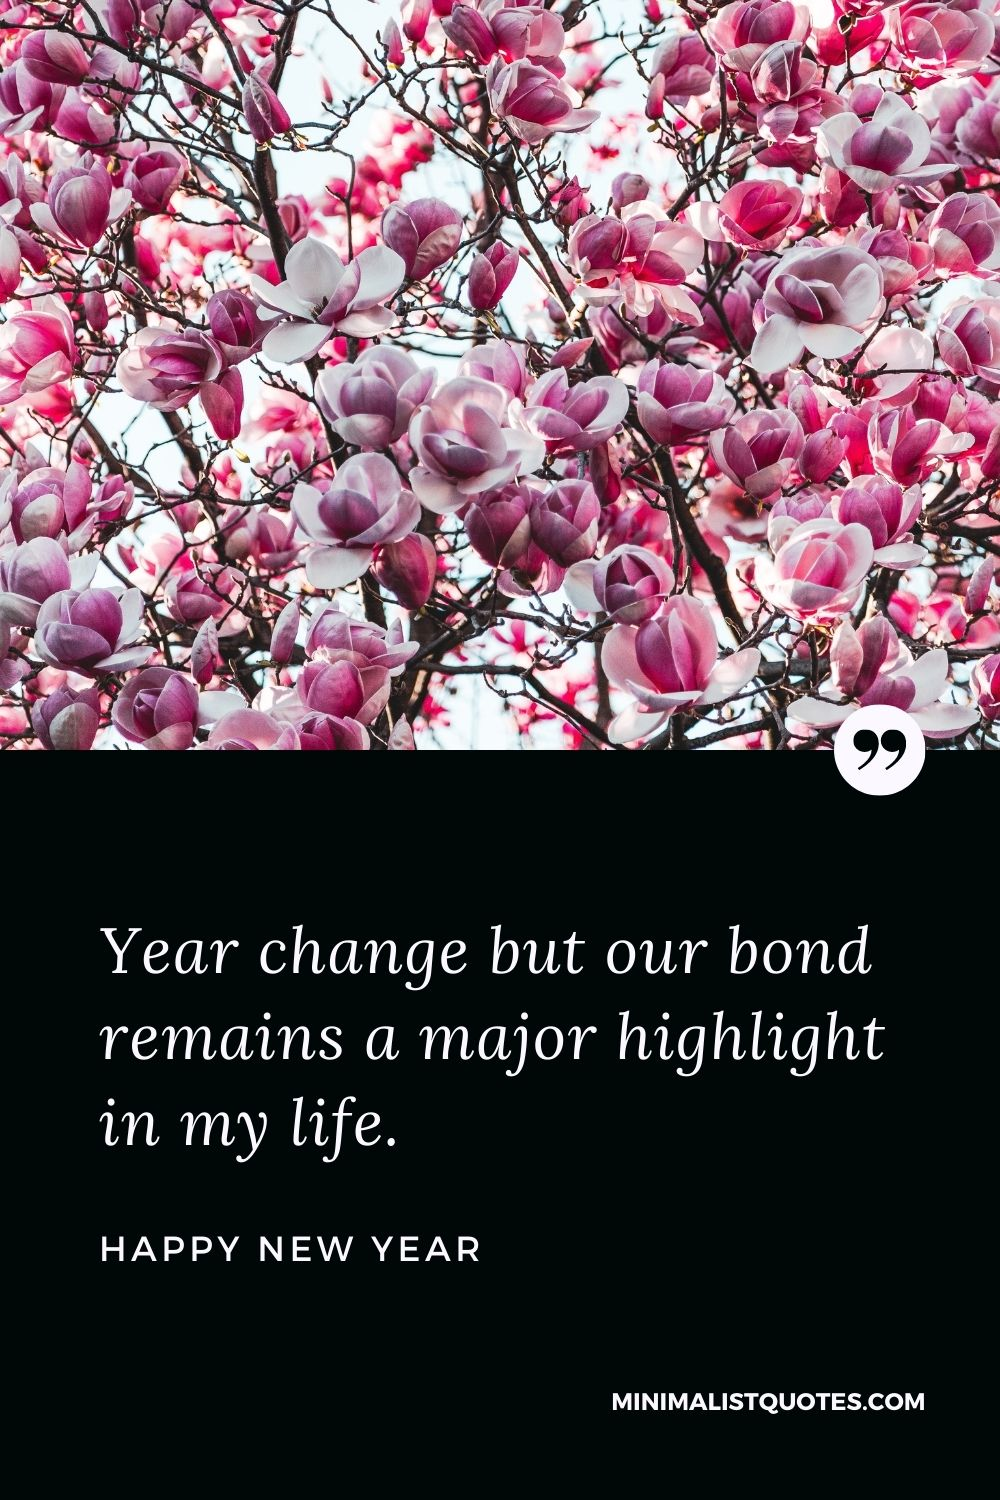 New Year Wish - Year change but our bond remains a major highlight in my life.